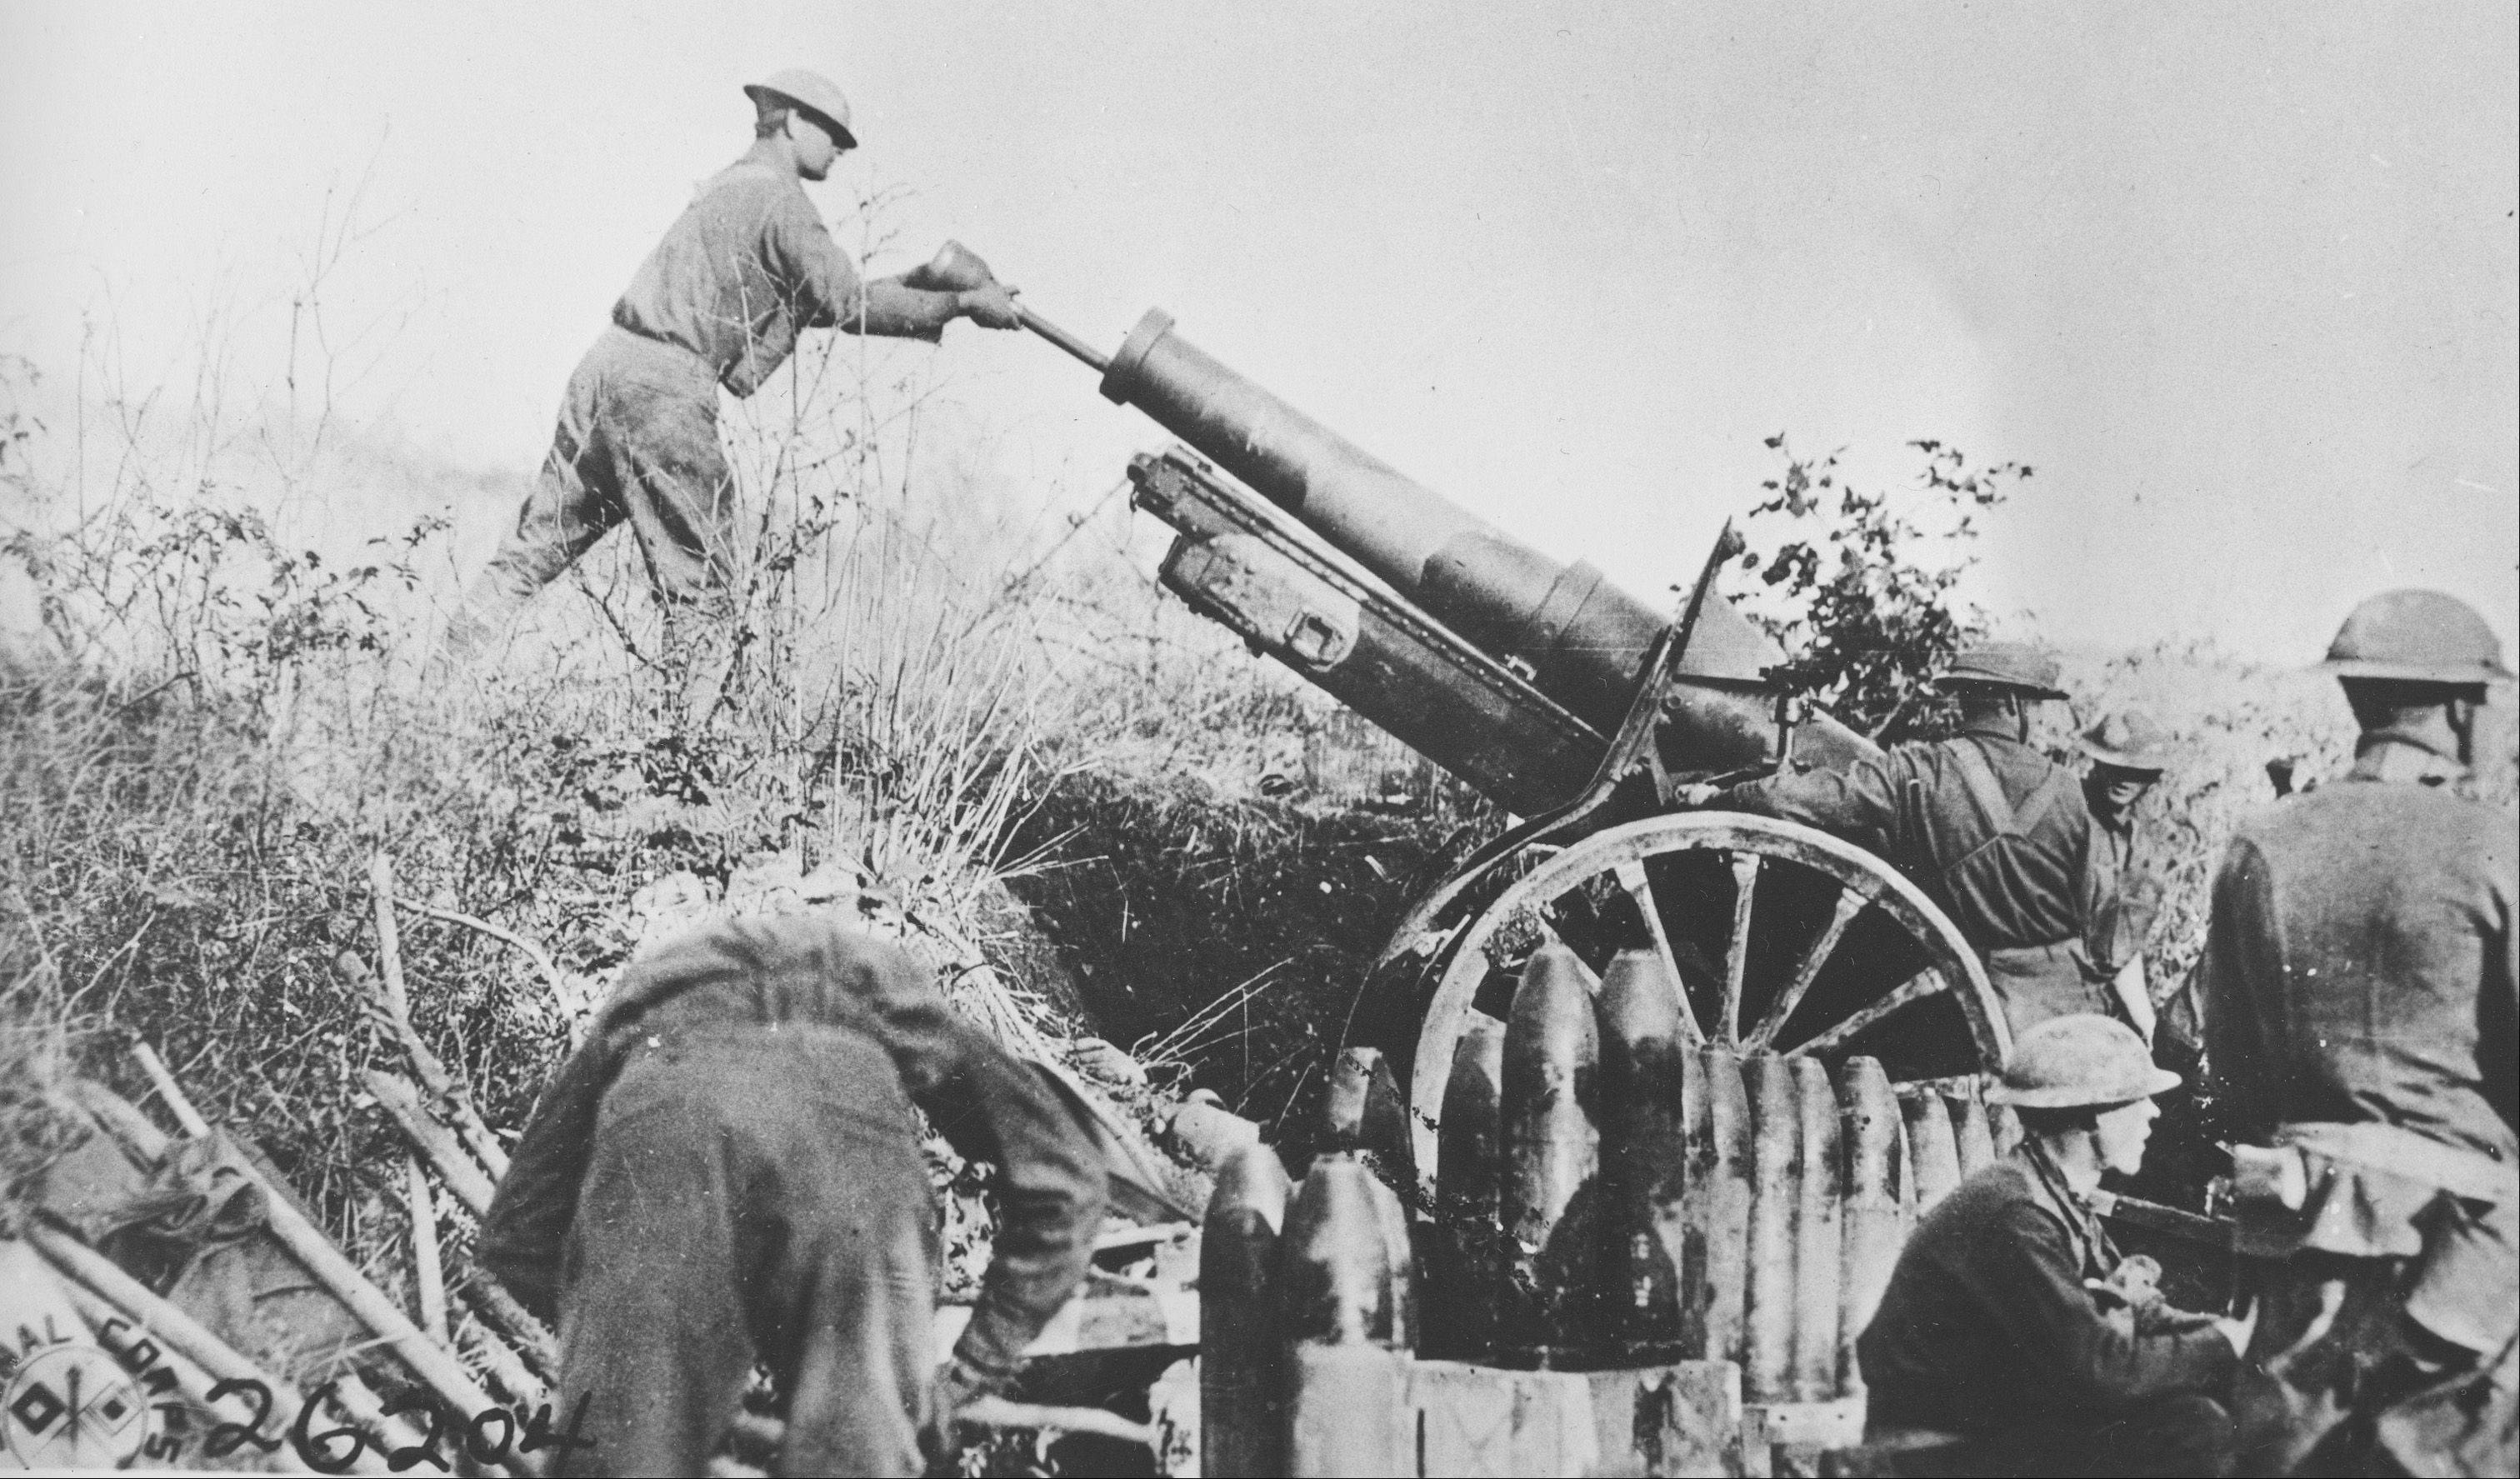 Associated Press File PhotoA U.S. artillery crew operates a 155mm gun in in France, during World War I, the so-called war to end all wars.